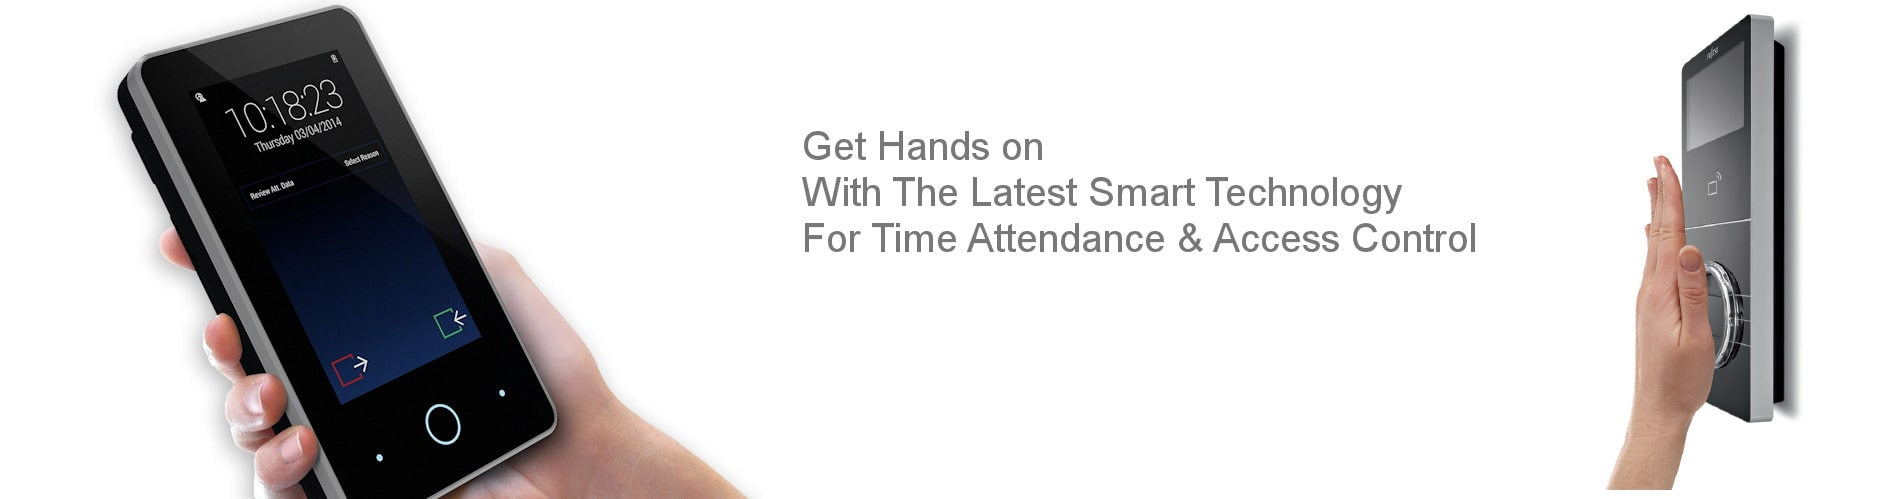 Hands on with latest Attendance technology